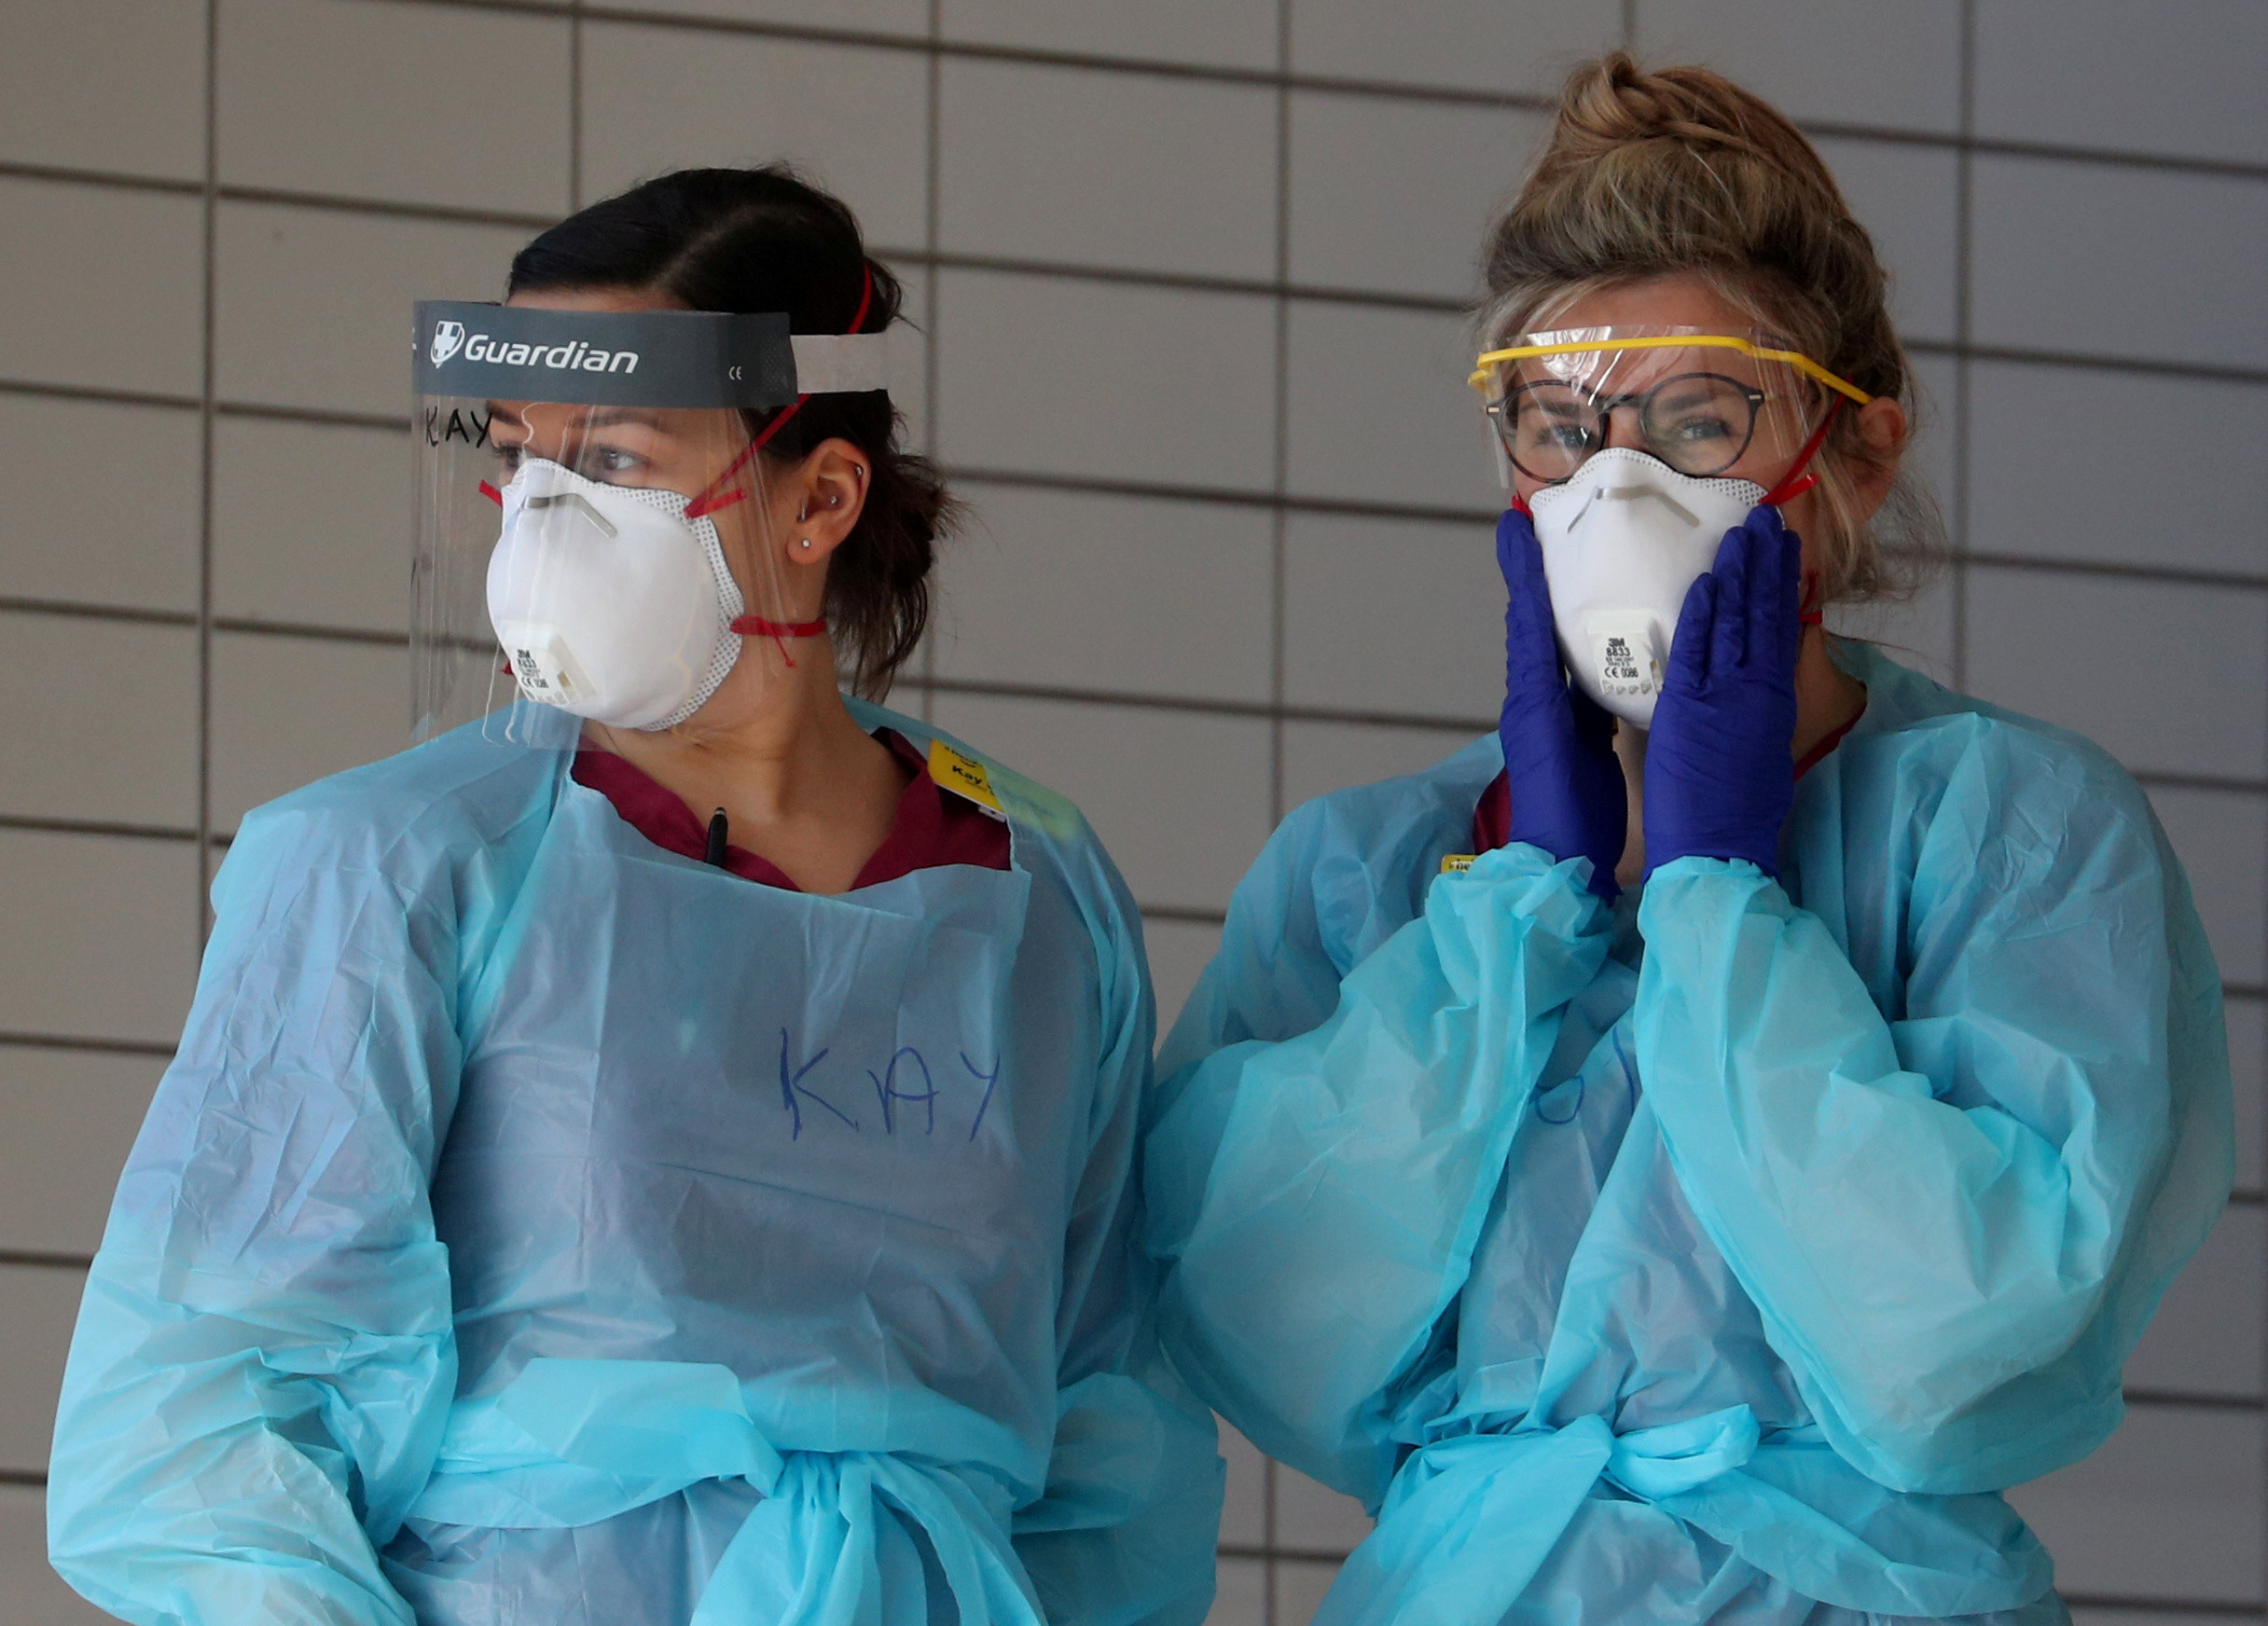 Medical staff wearing protective clothing at St Thomas' hospital as the spread of the coronavirus disease (COVID-19) continues, London, Britain, March 31, 2020. REUTERS/Hannah McKay     TPX IMAGES OF THE DAY - RC2WUF9E7Q01